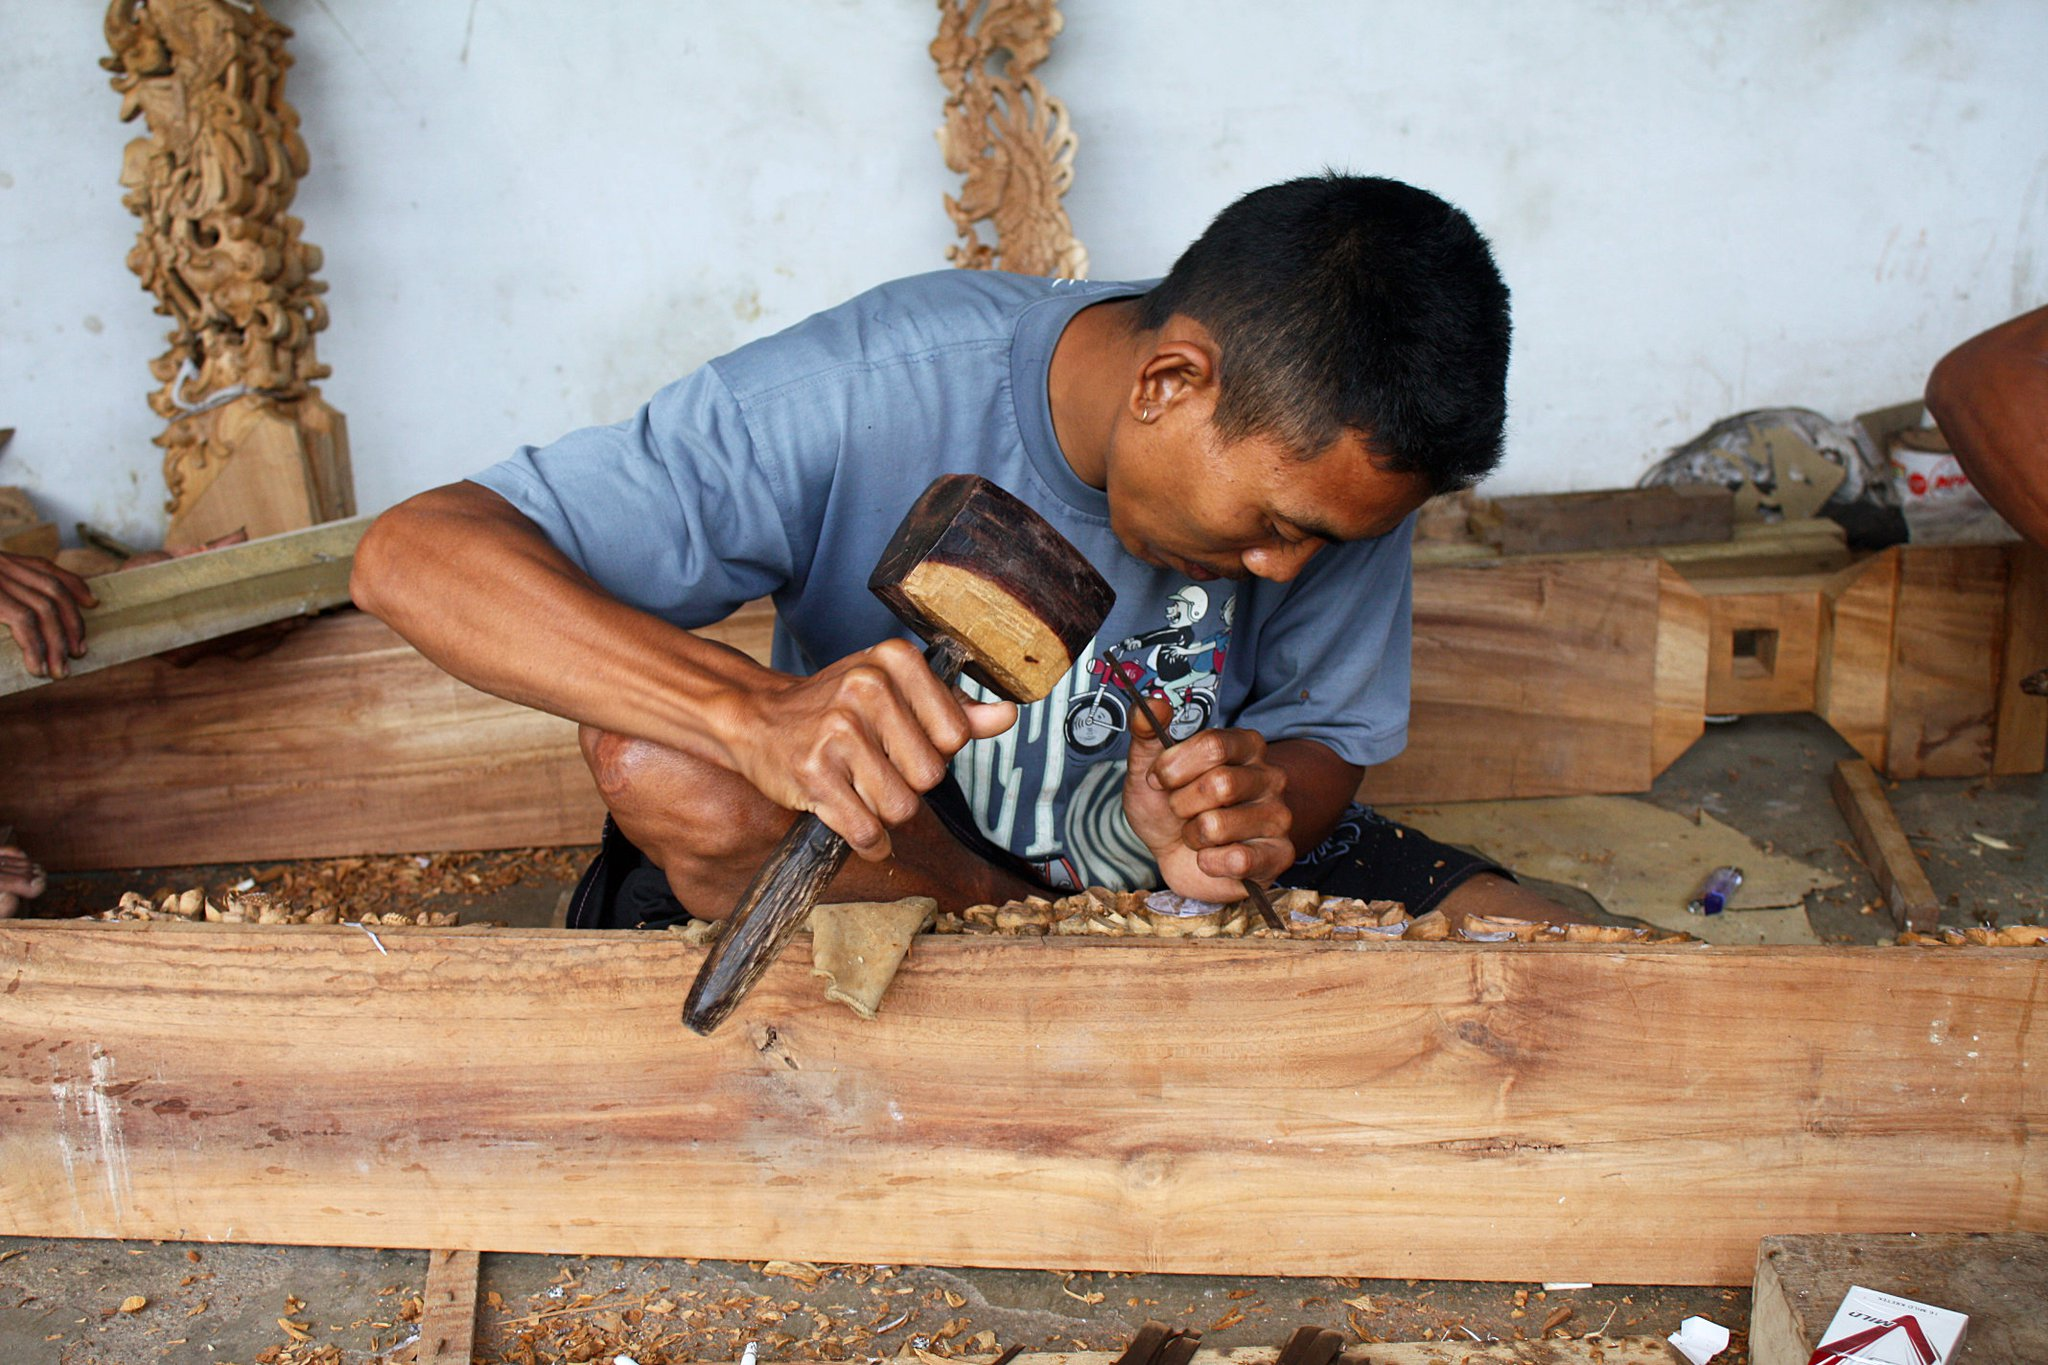 You can see how intricate the finished pieces are behind this wood worker